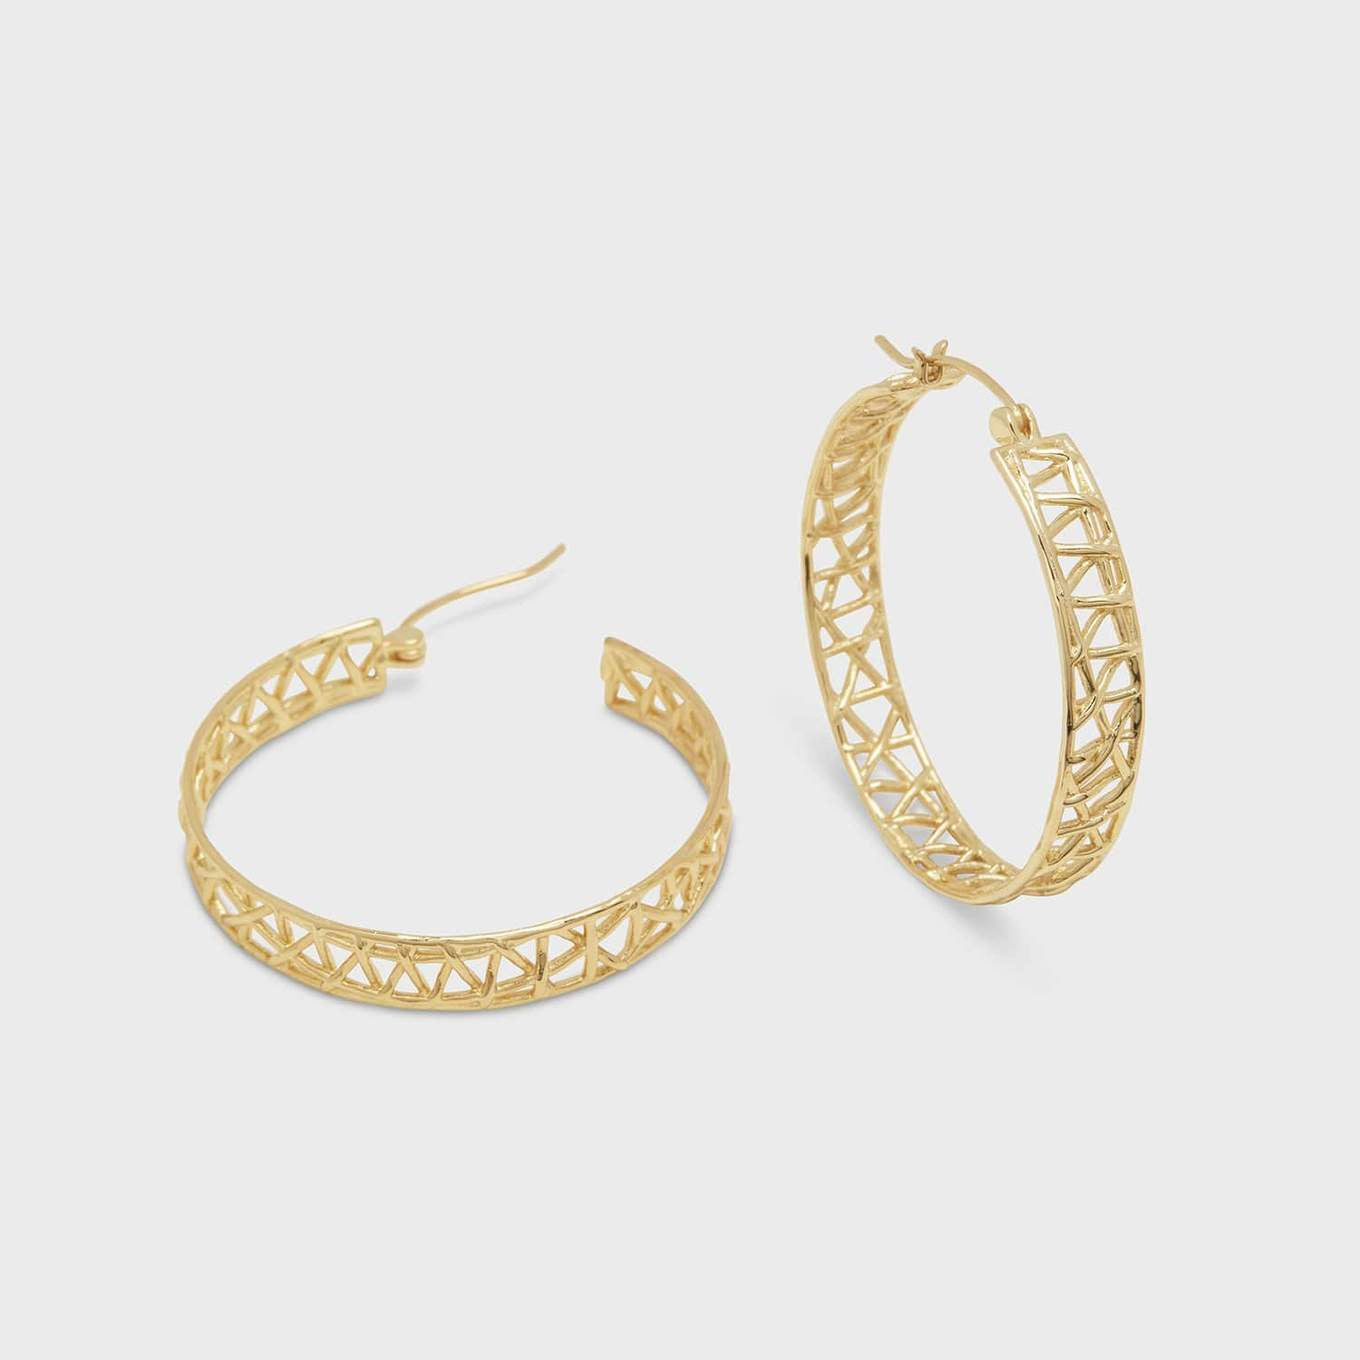 "This delicate gold knit pattern catches the light at every twist and turn. A summertime hoop if we've ever seen one.  1 1/2' profile diameter 1/4"" thick Hinge closure 18k gold plated brass"